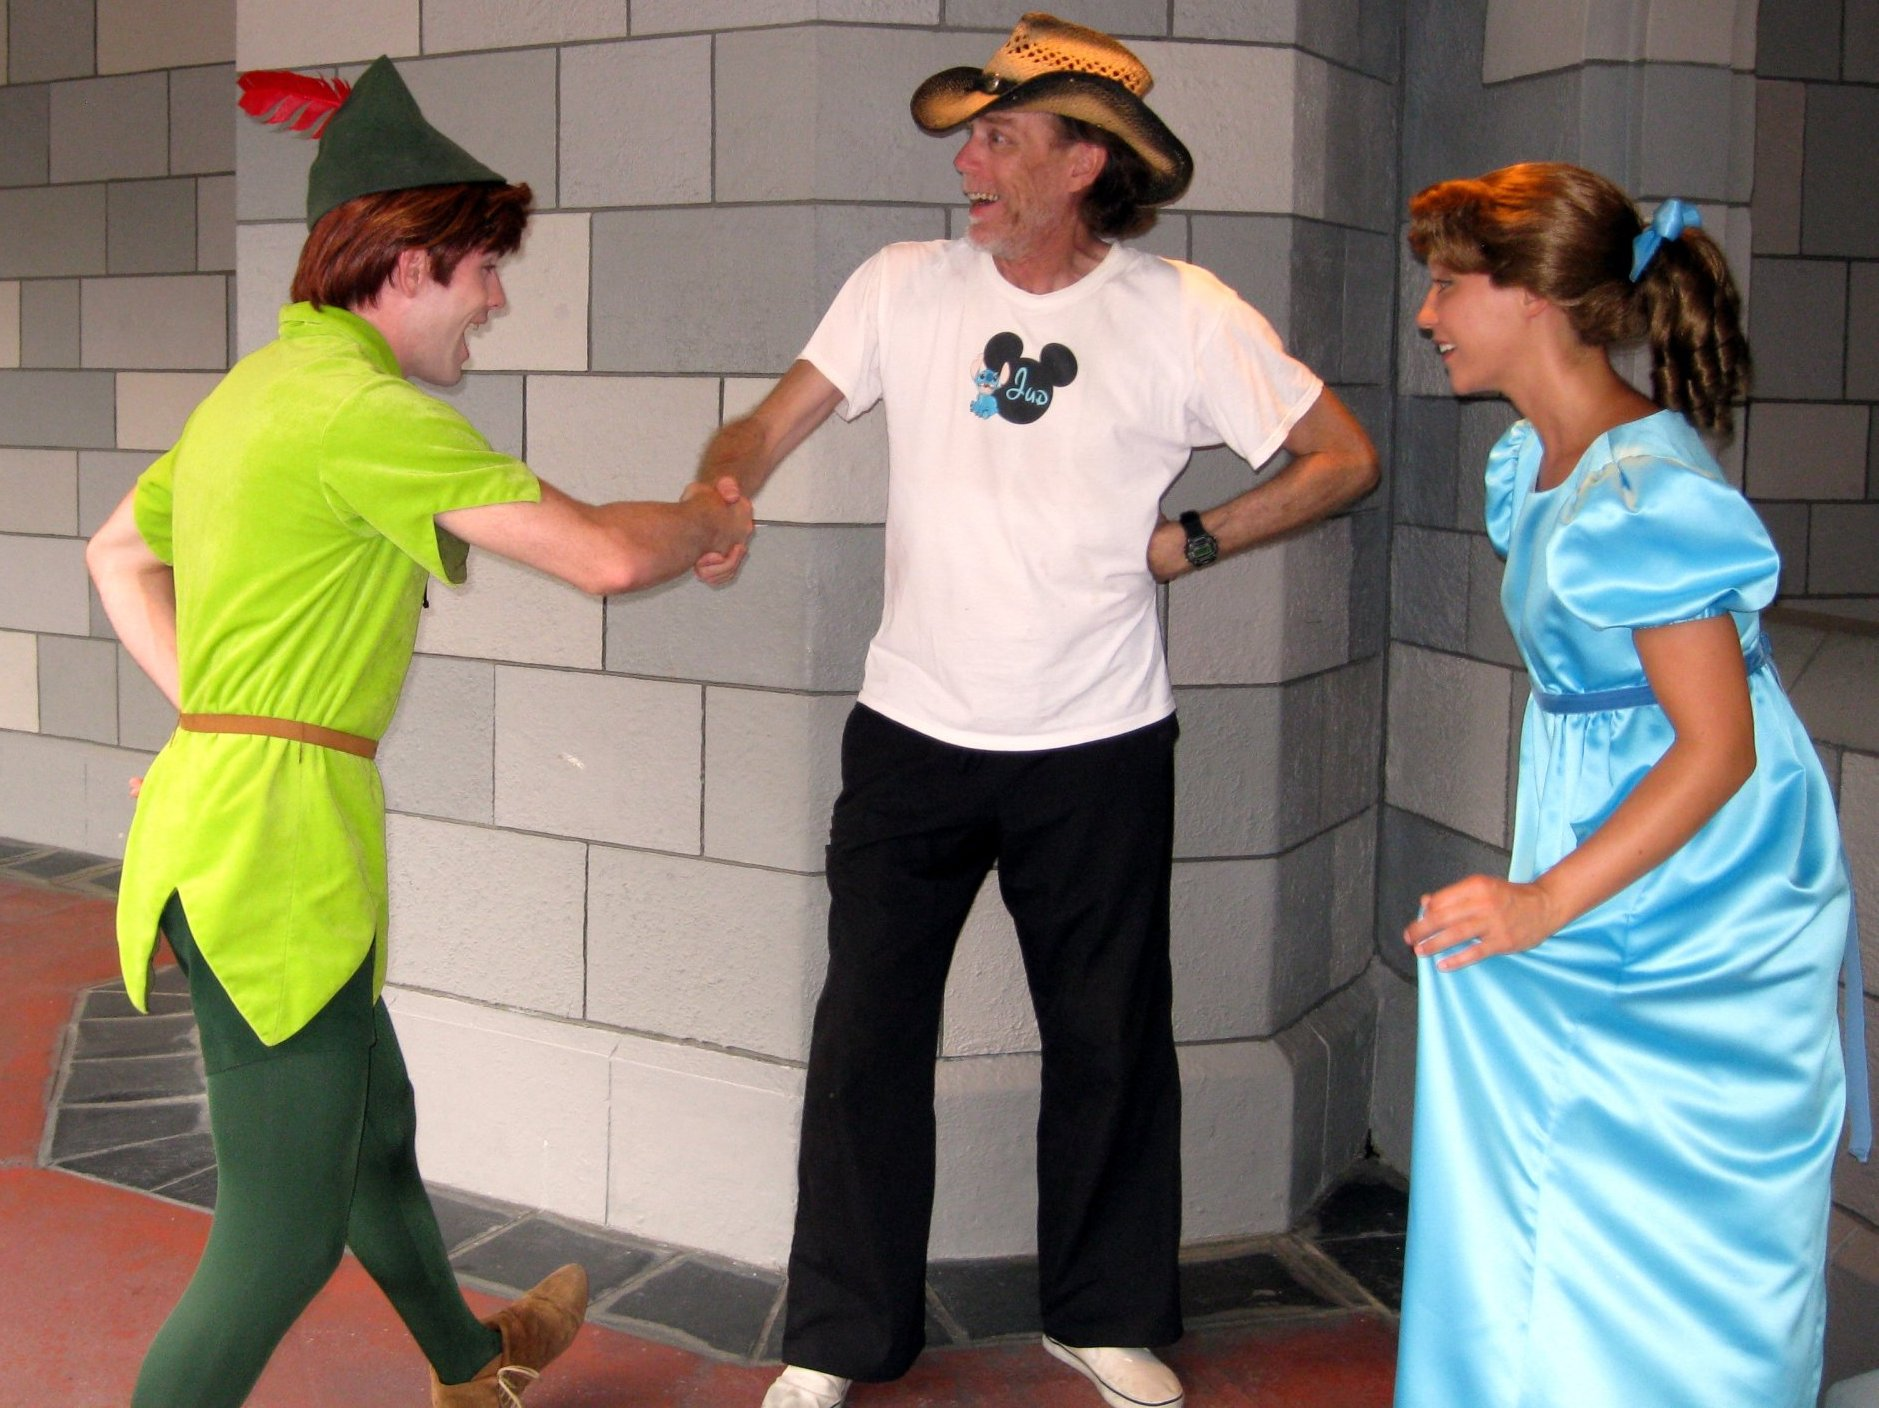 Jud's Disney Picture of the Day: Meet & Greet